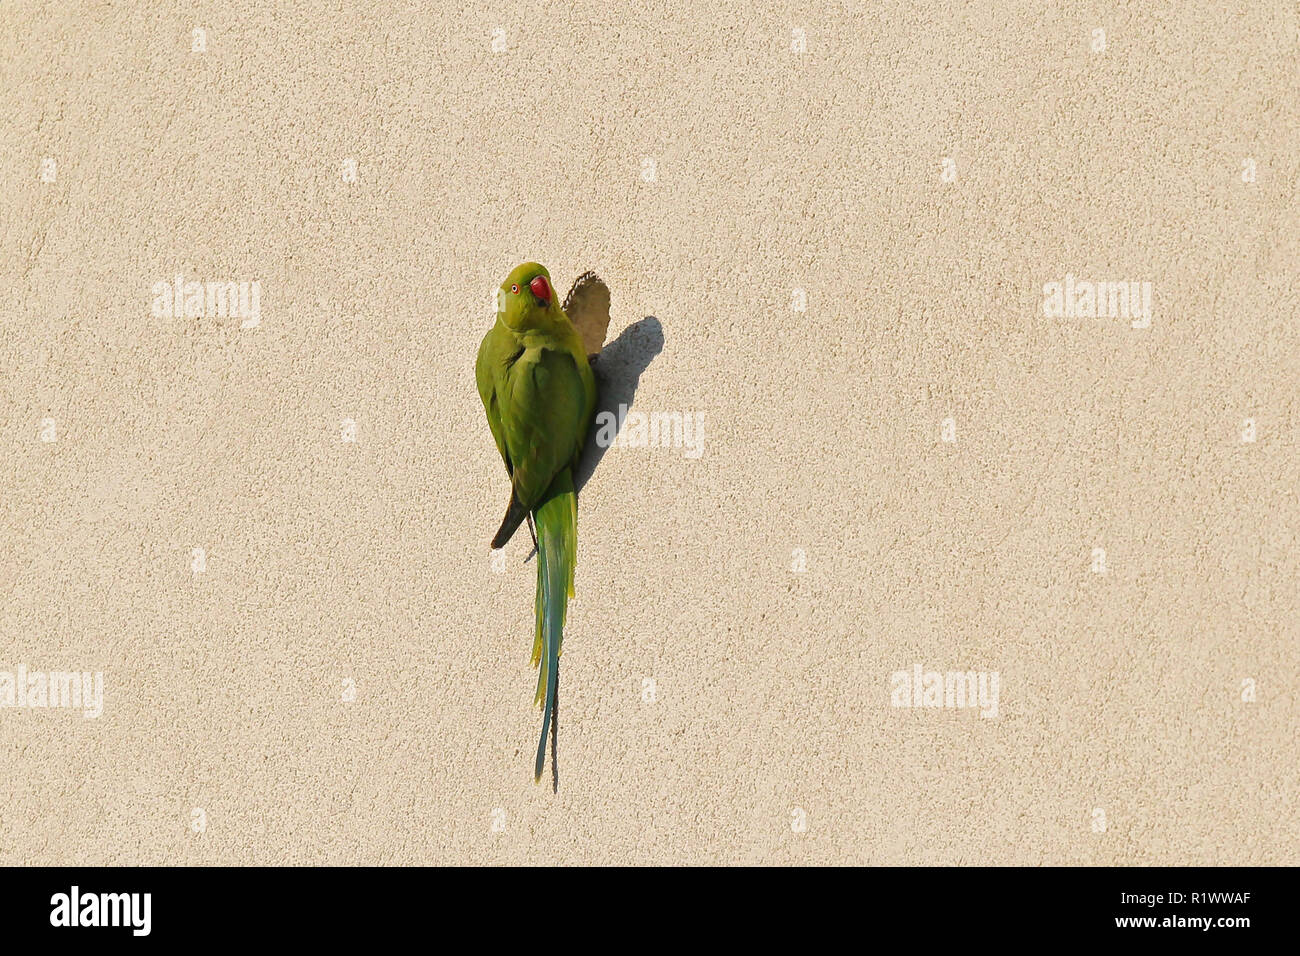 Rose-ringed Parakeet (Psittacula krameri) sitting in front of nest hole in house front, Heidelberg, Baden-Wuerttemberg, Germany - Stock Image